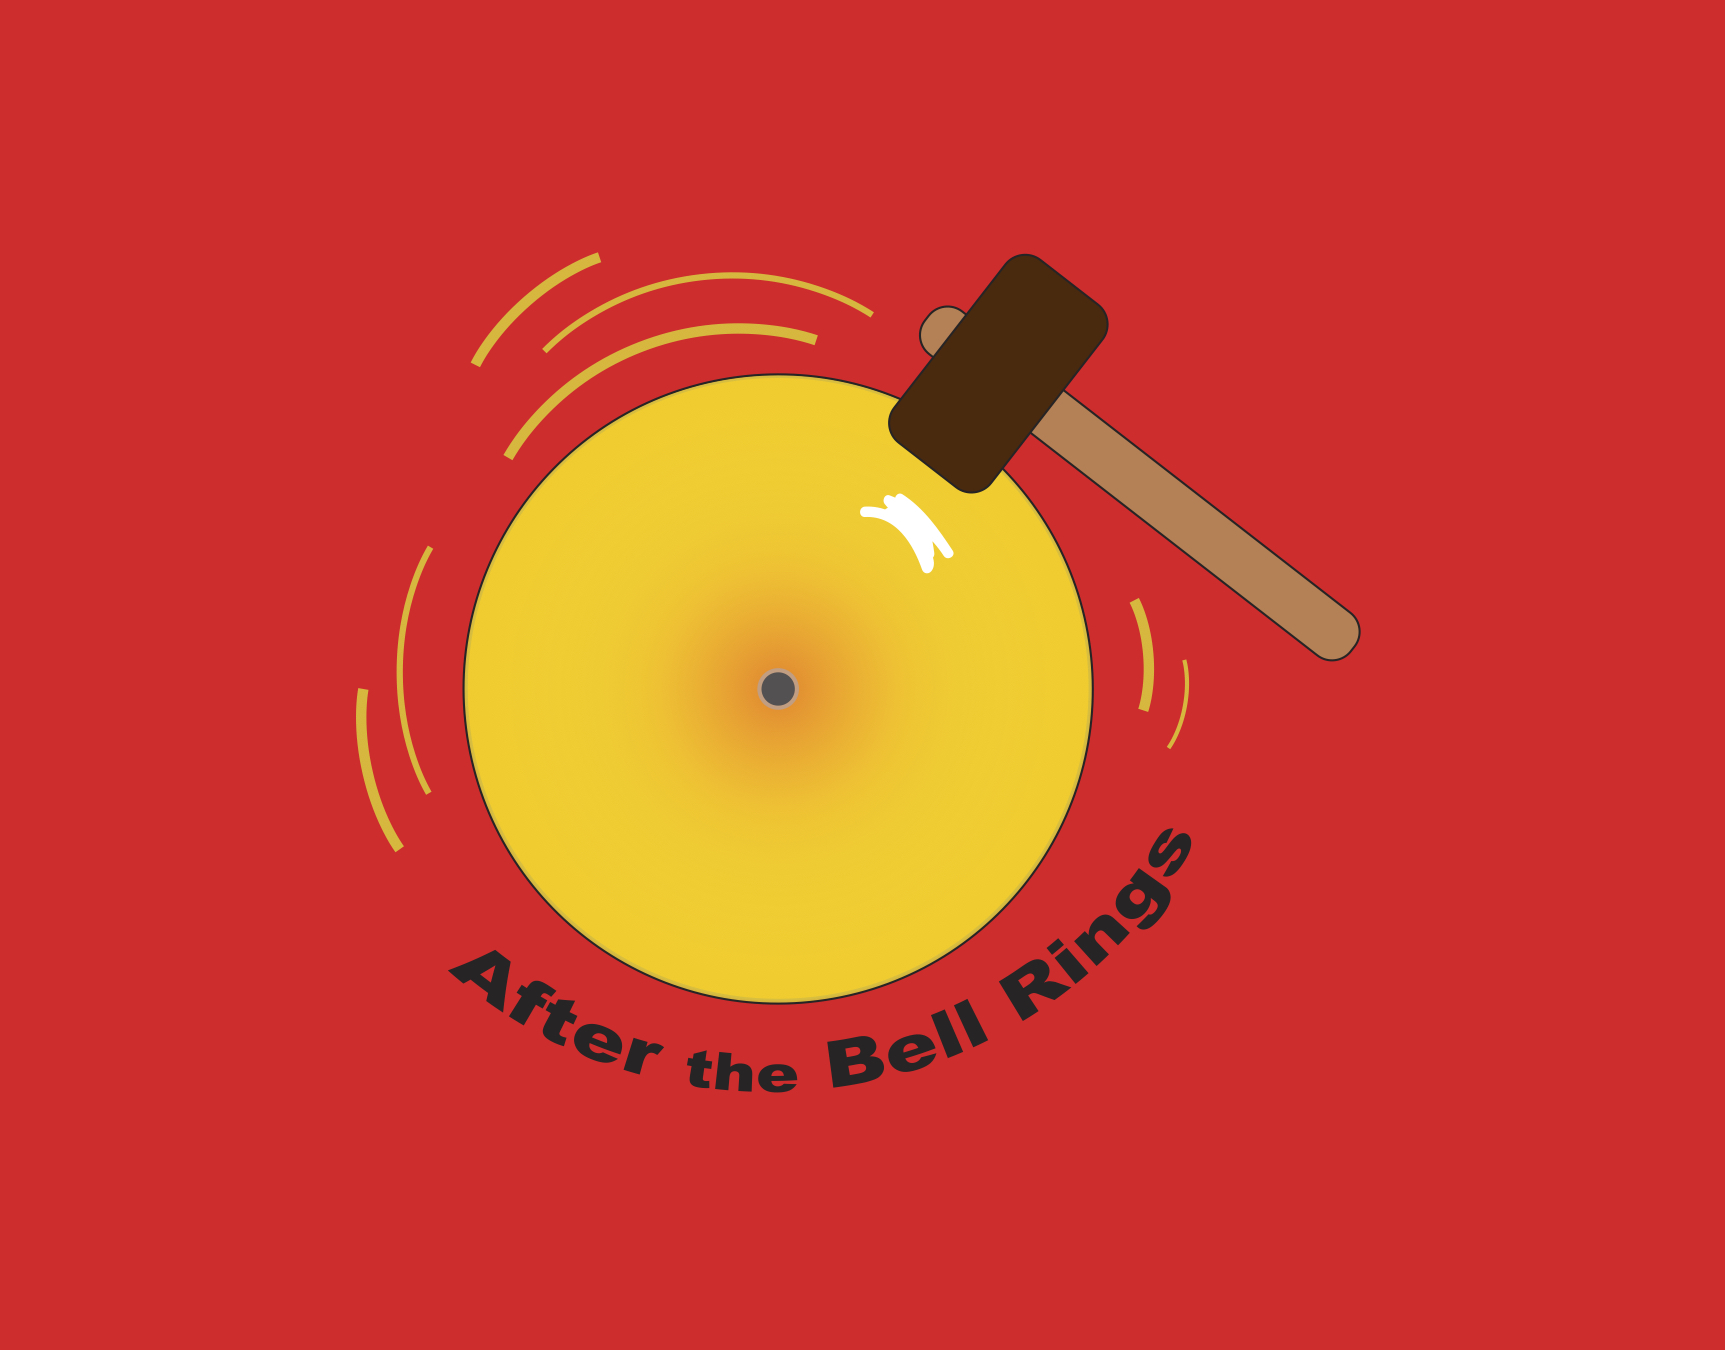 Wrestling clipart bell. After the rings